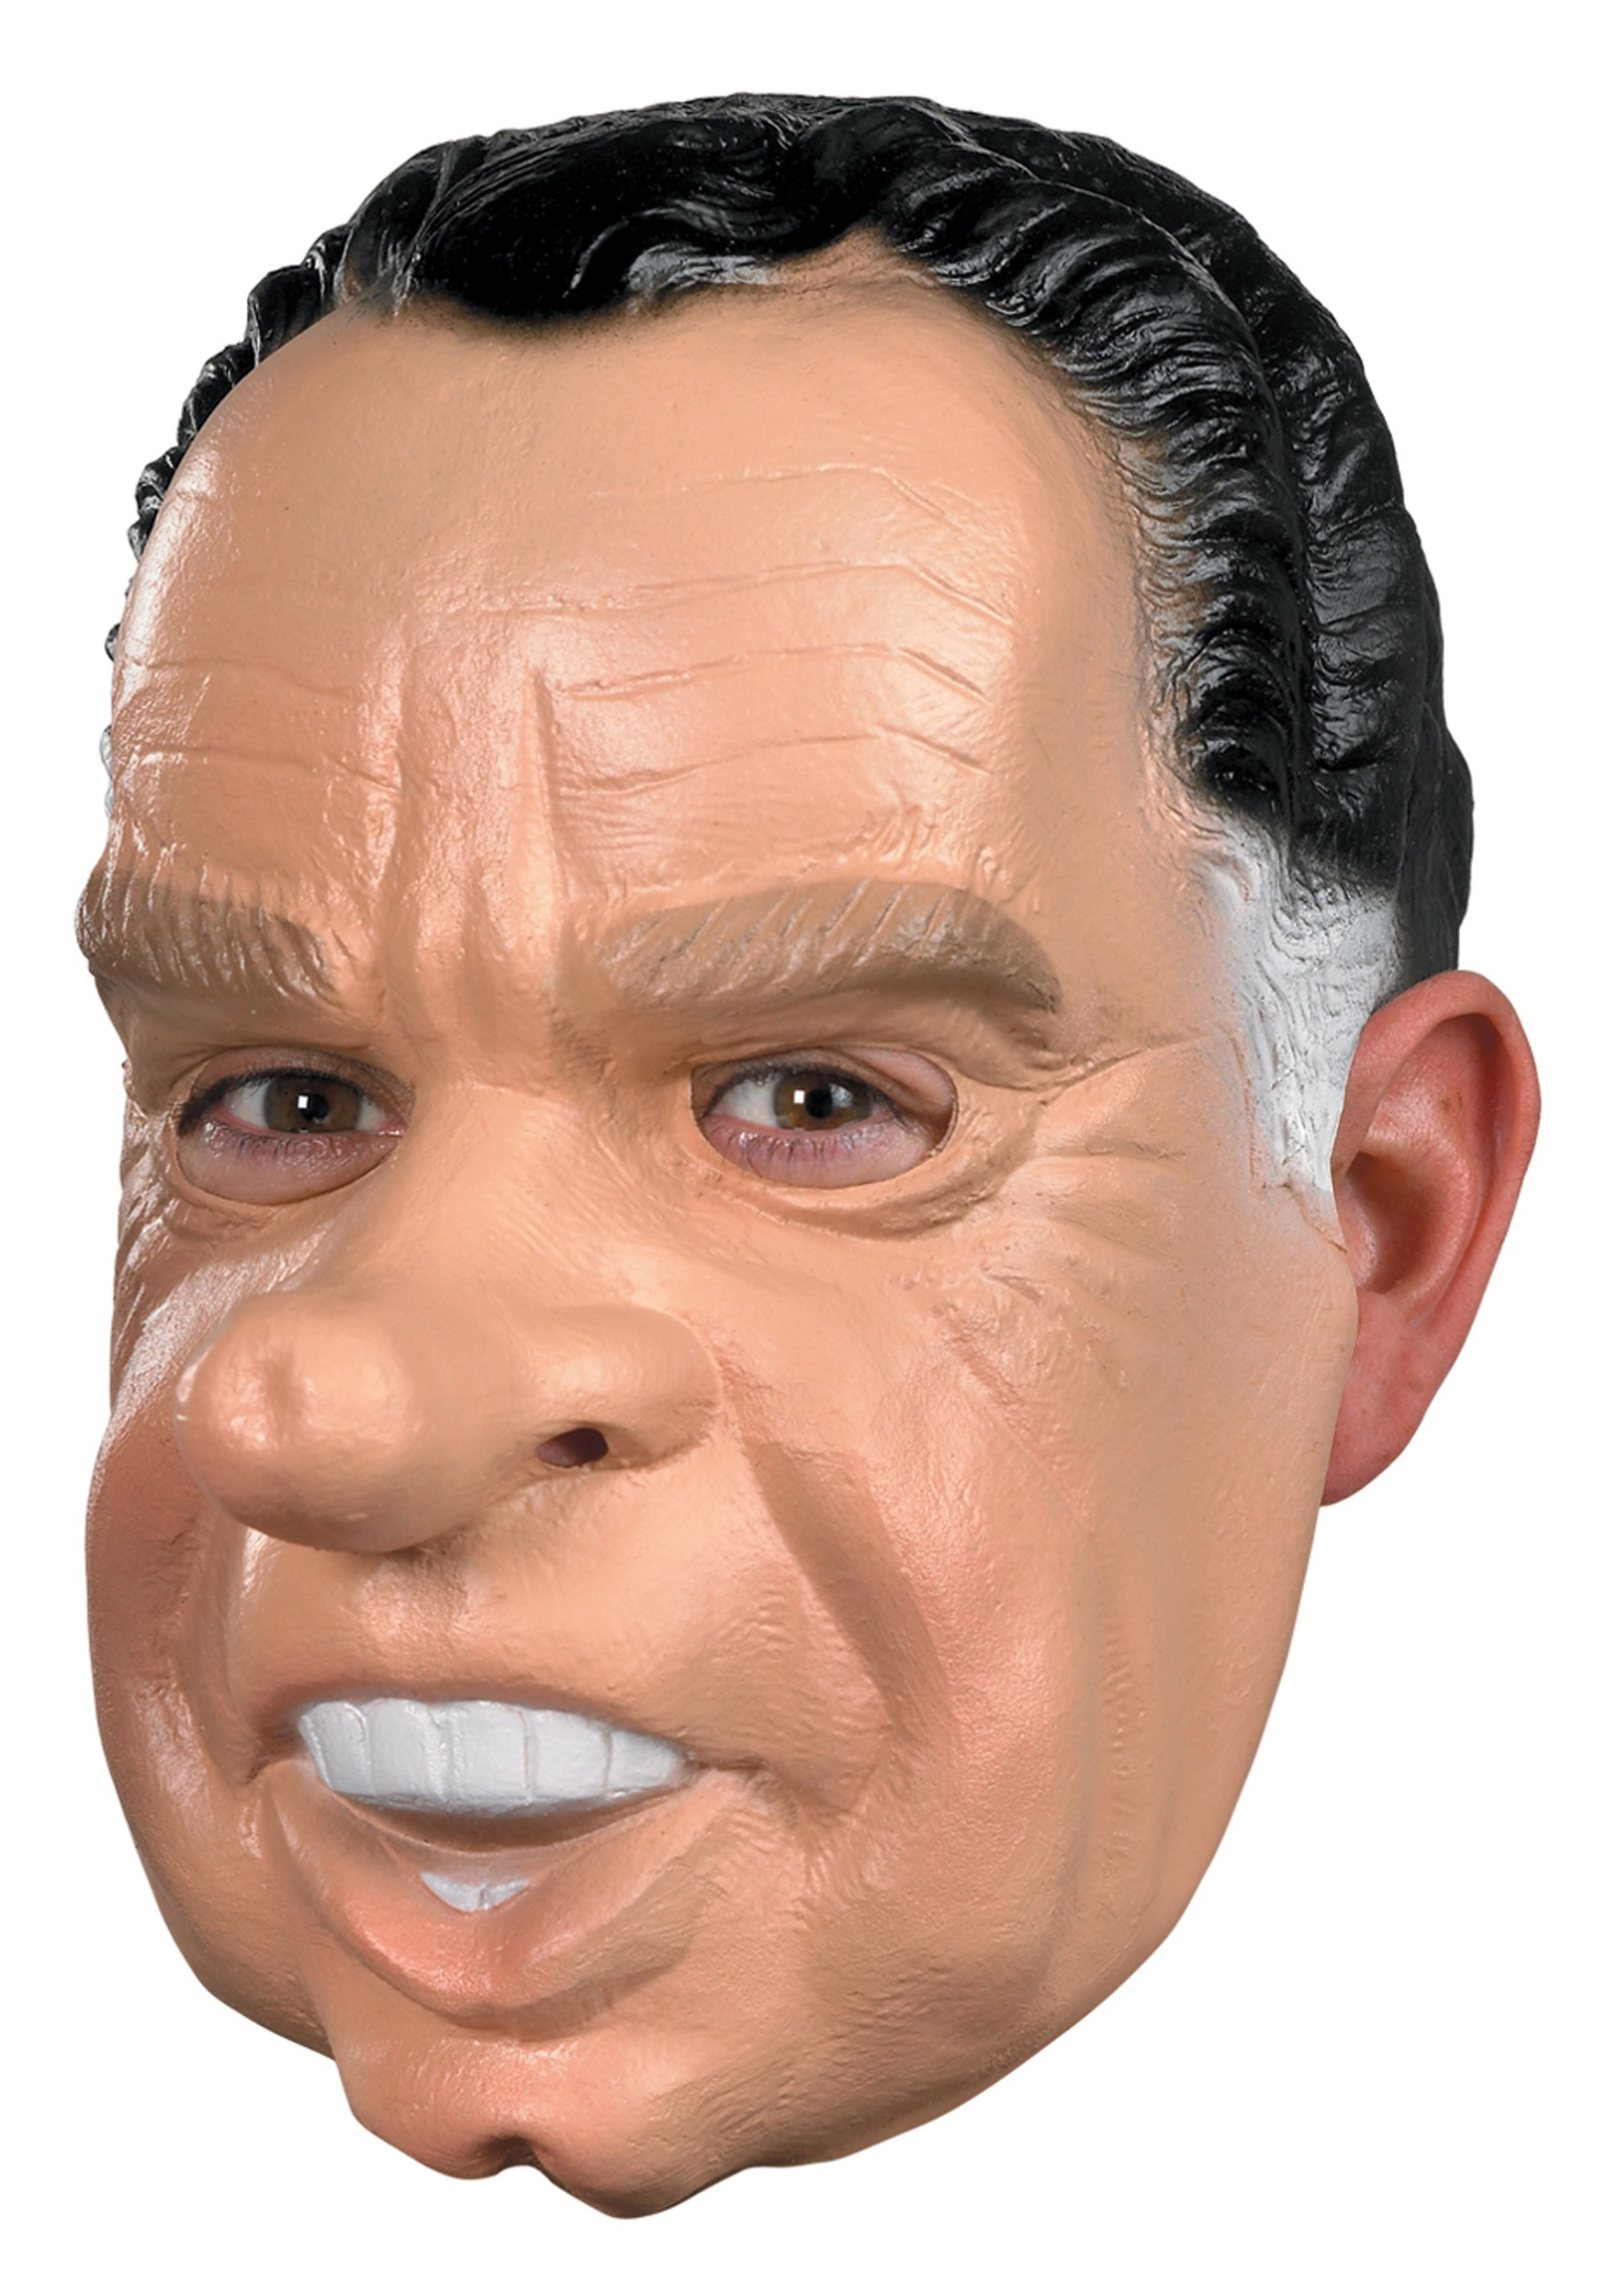 richard nixon mask - President Halloween Mask